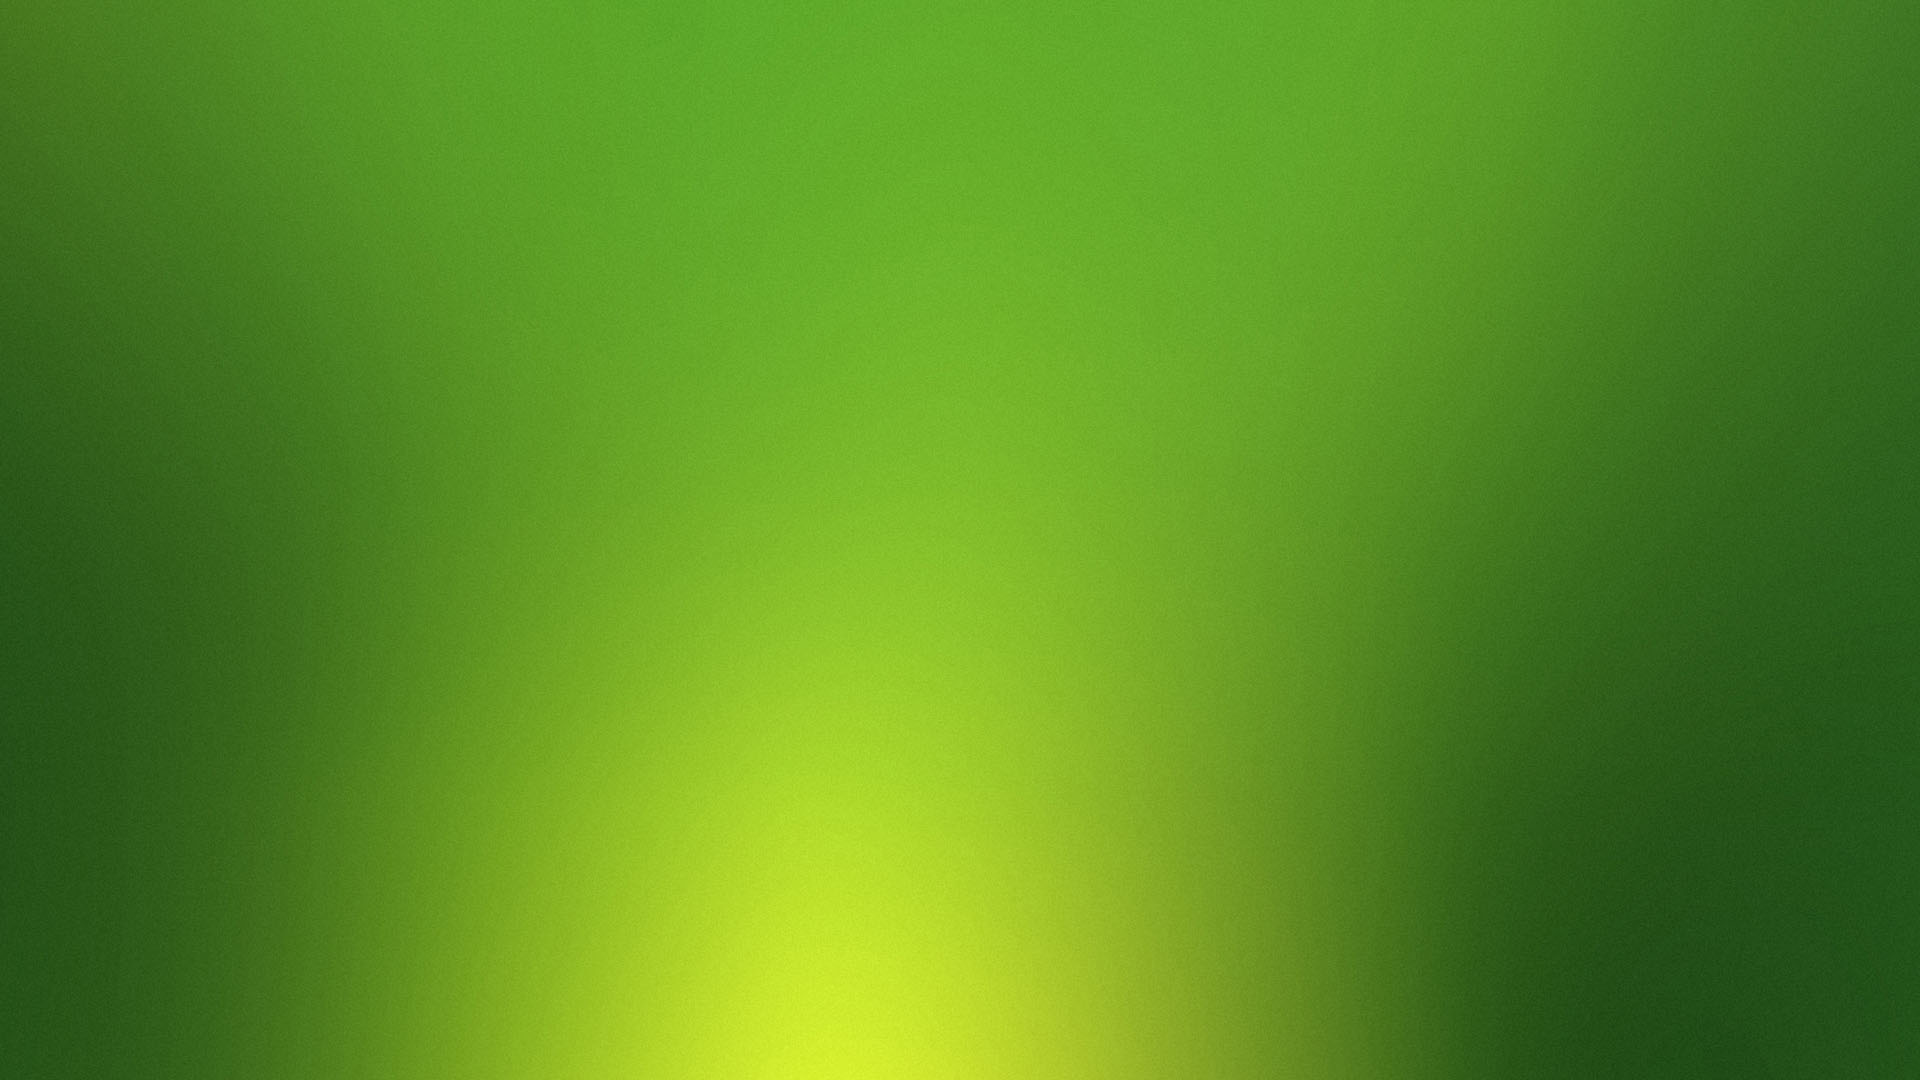 Plain Green Backgrounds